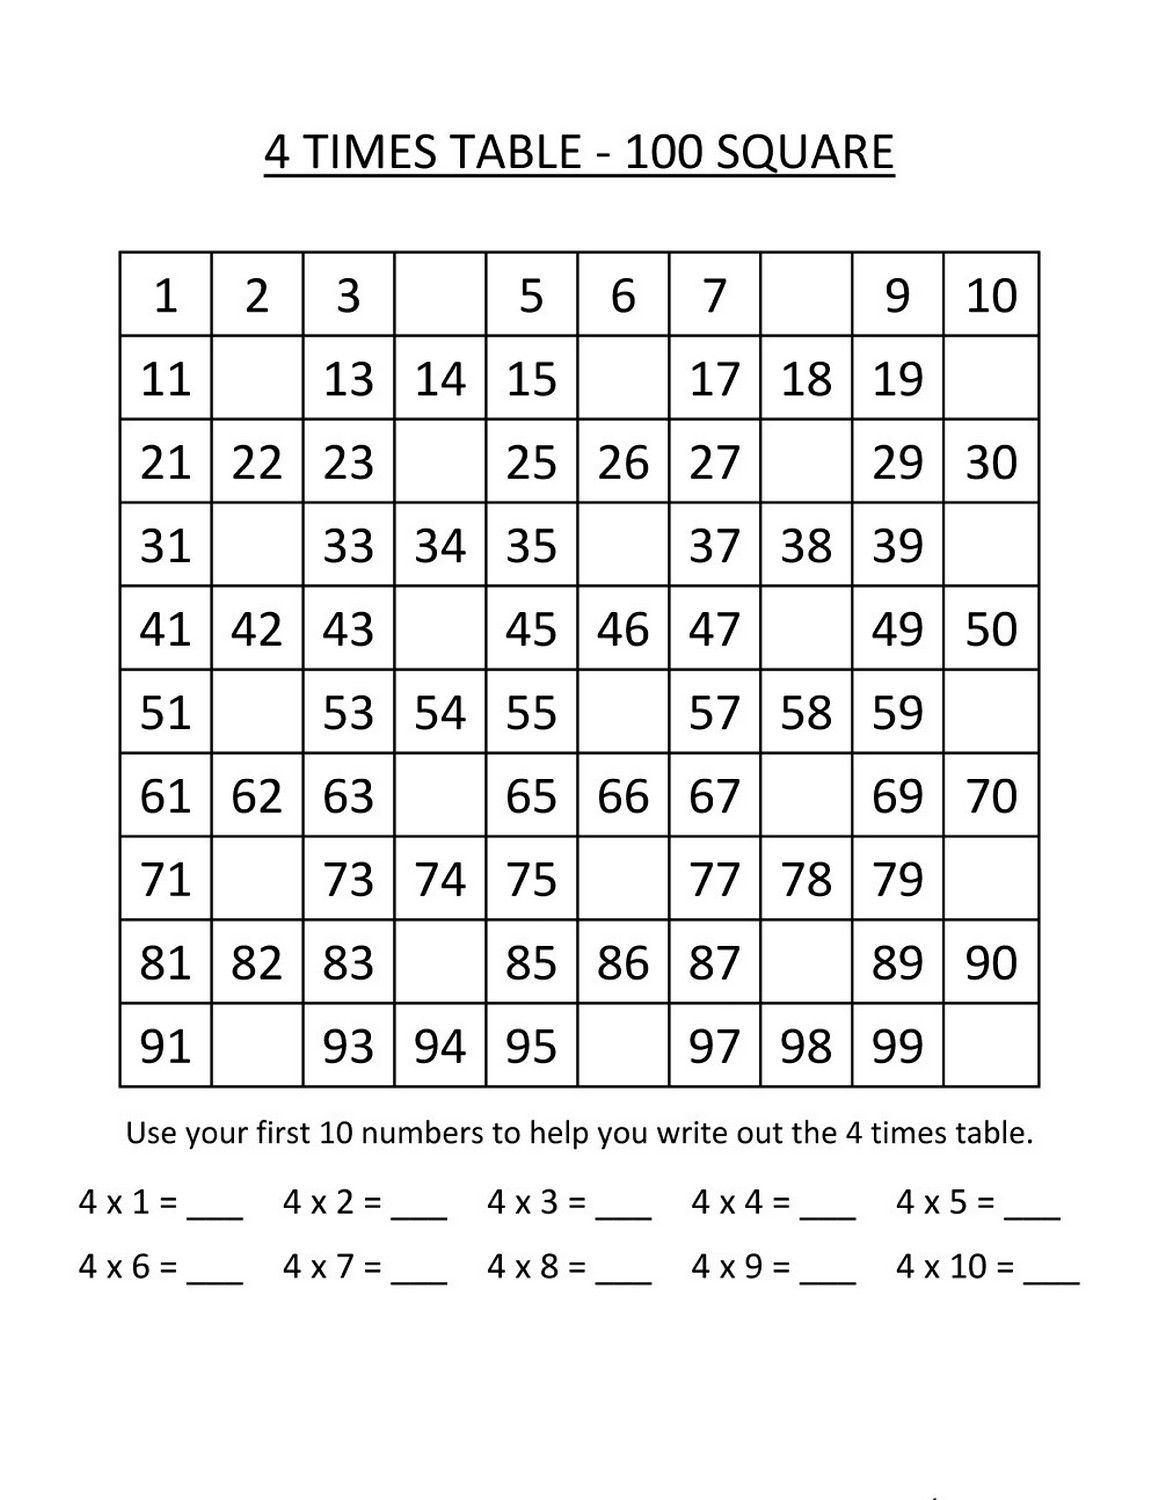 Times Table Exercise Basic Printable Multiplication Worksheets Times Tables Worksheets Printable Times Tables